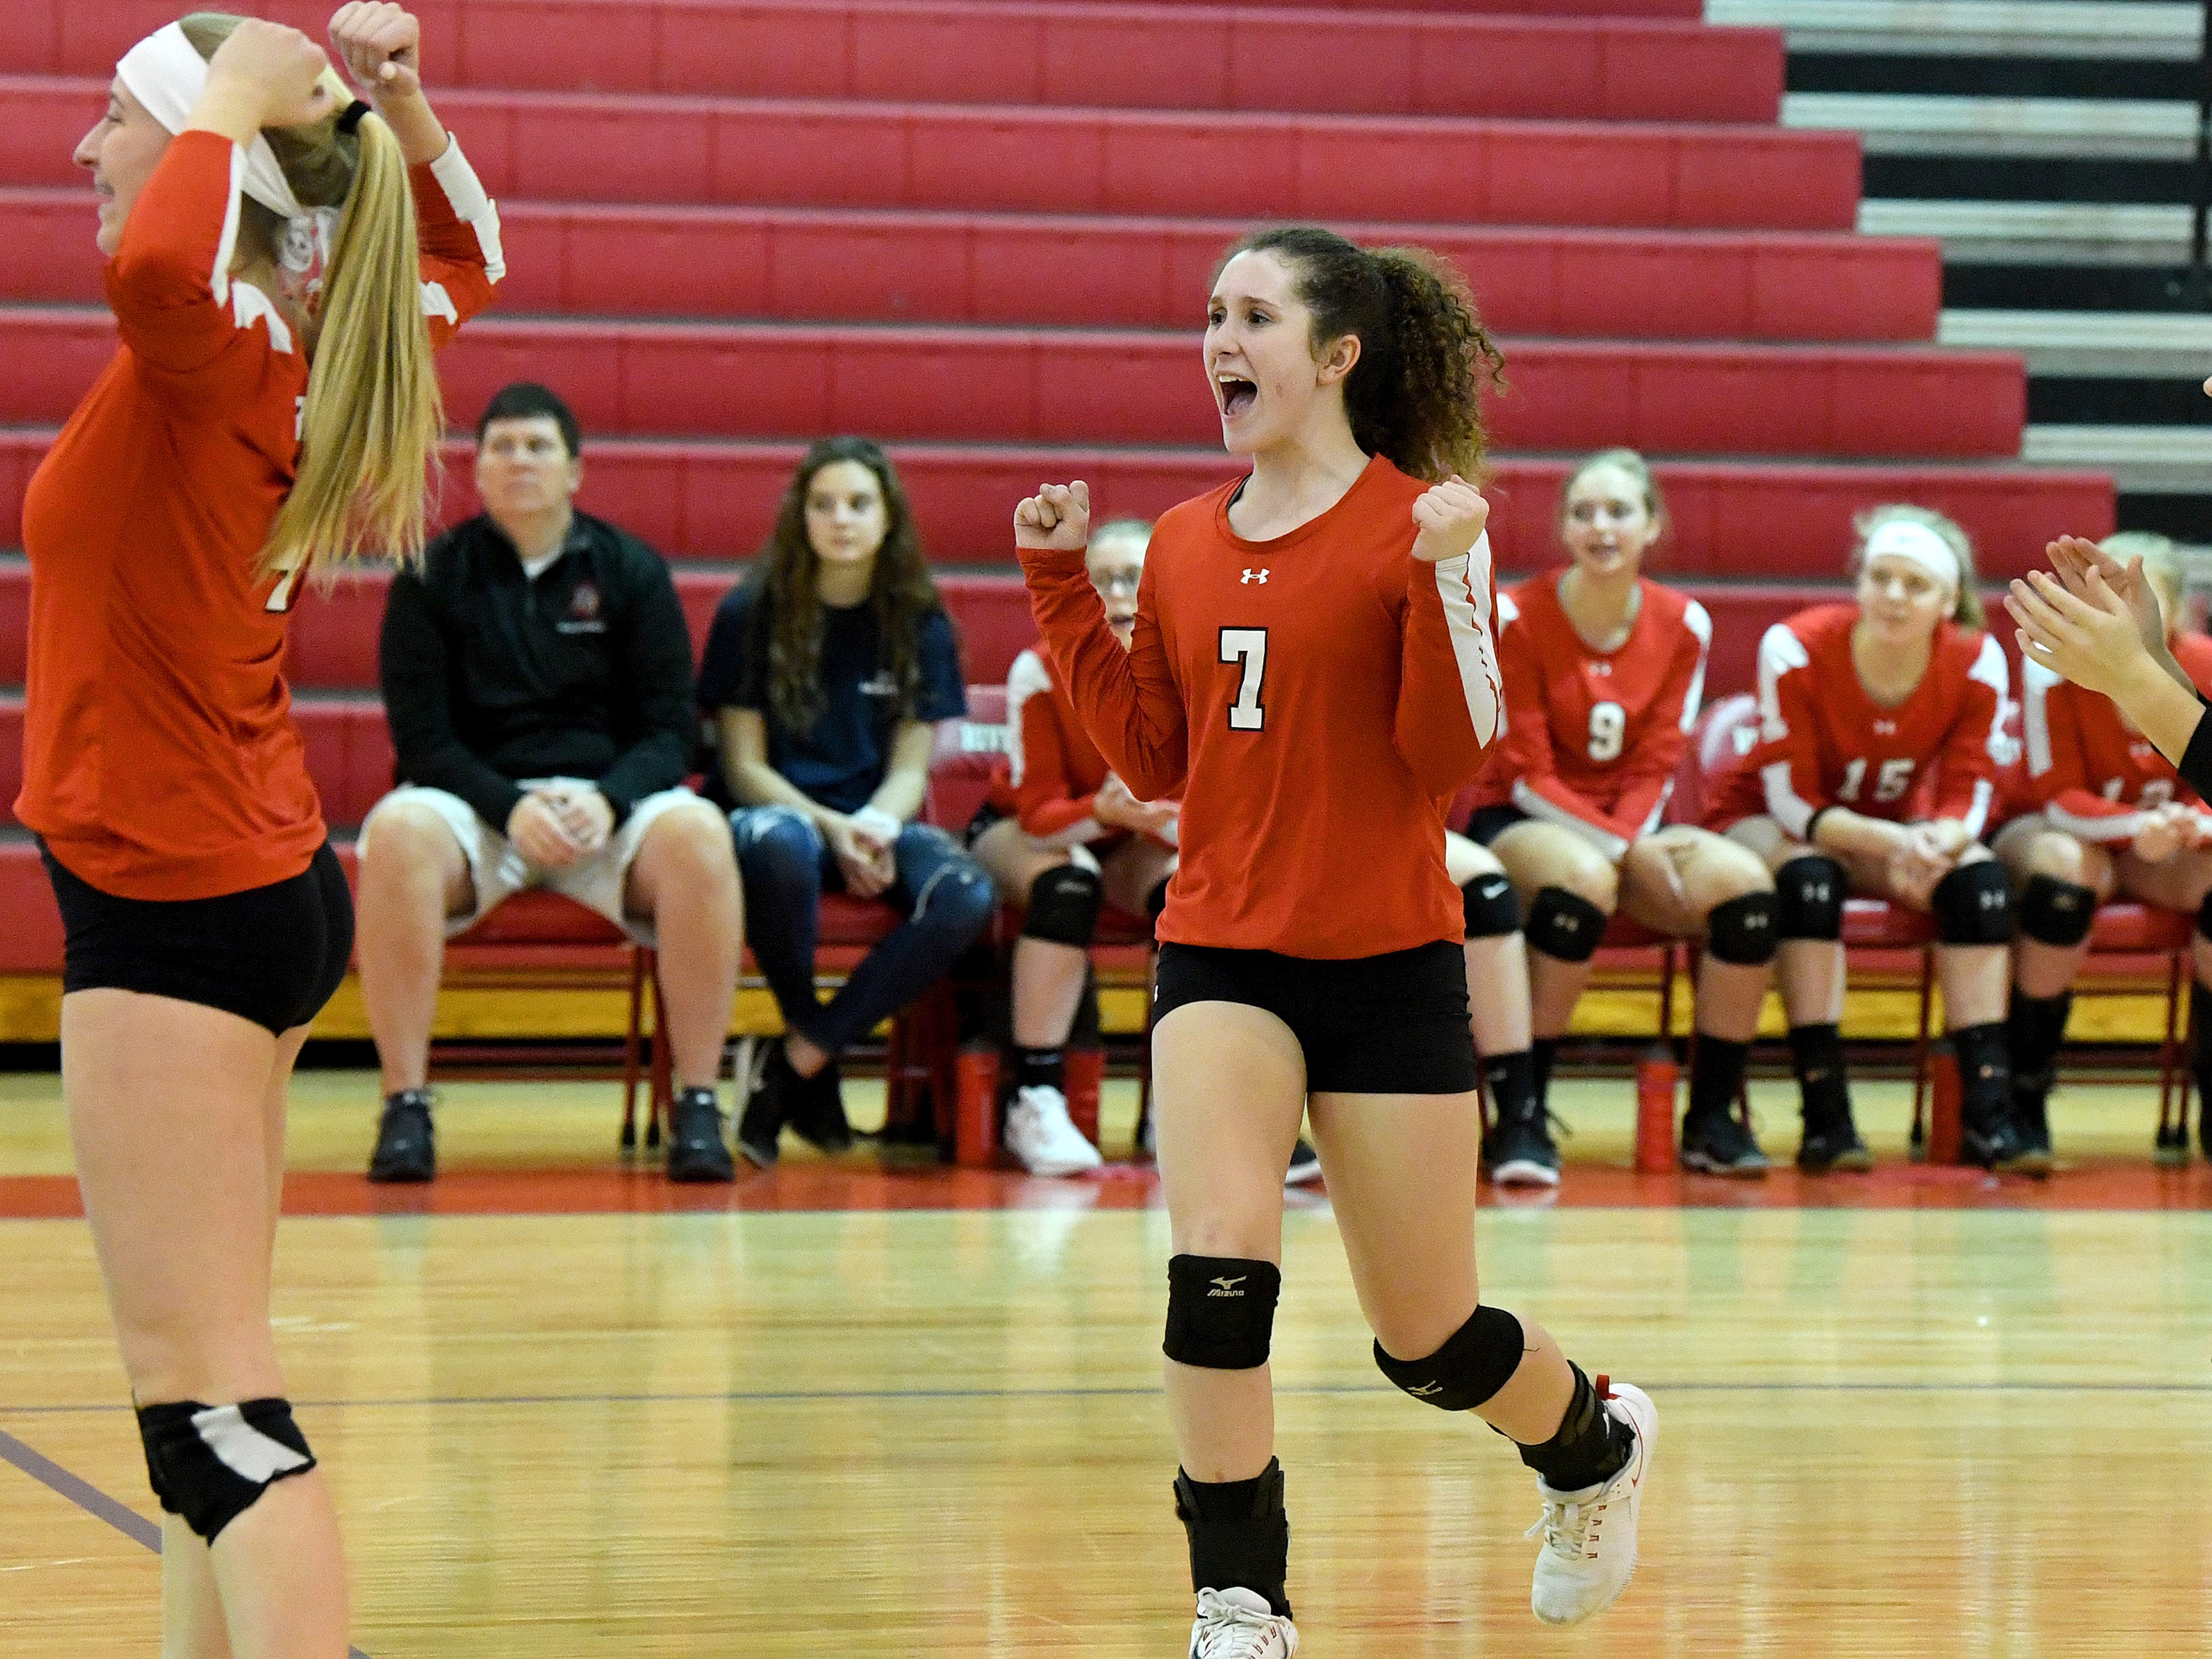 Riverheads' Gracie Fulton cheers after they score another point during a Region 1B quarterfinal match, played in Greenville on Thursday, Nov. 1, 2018.